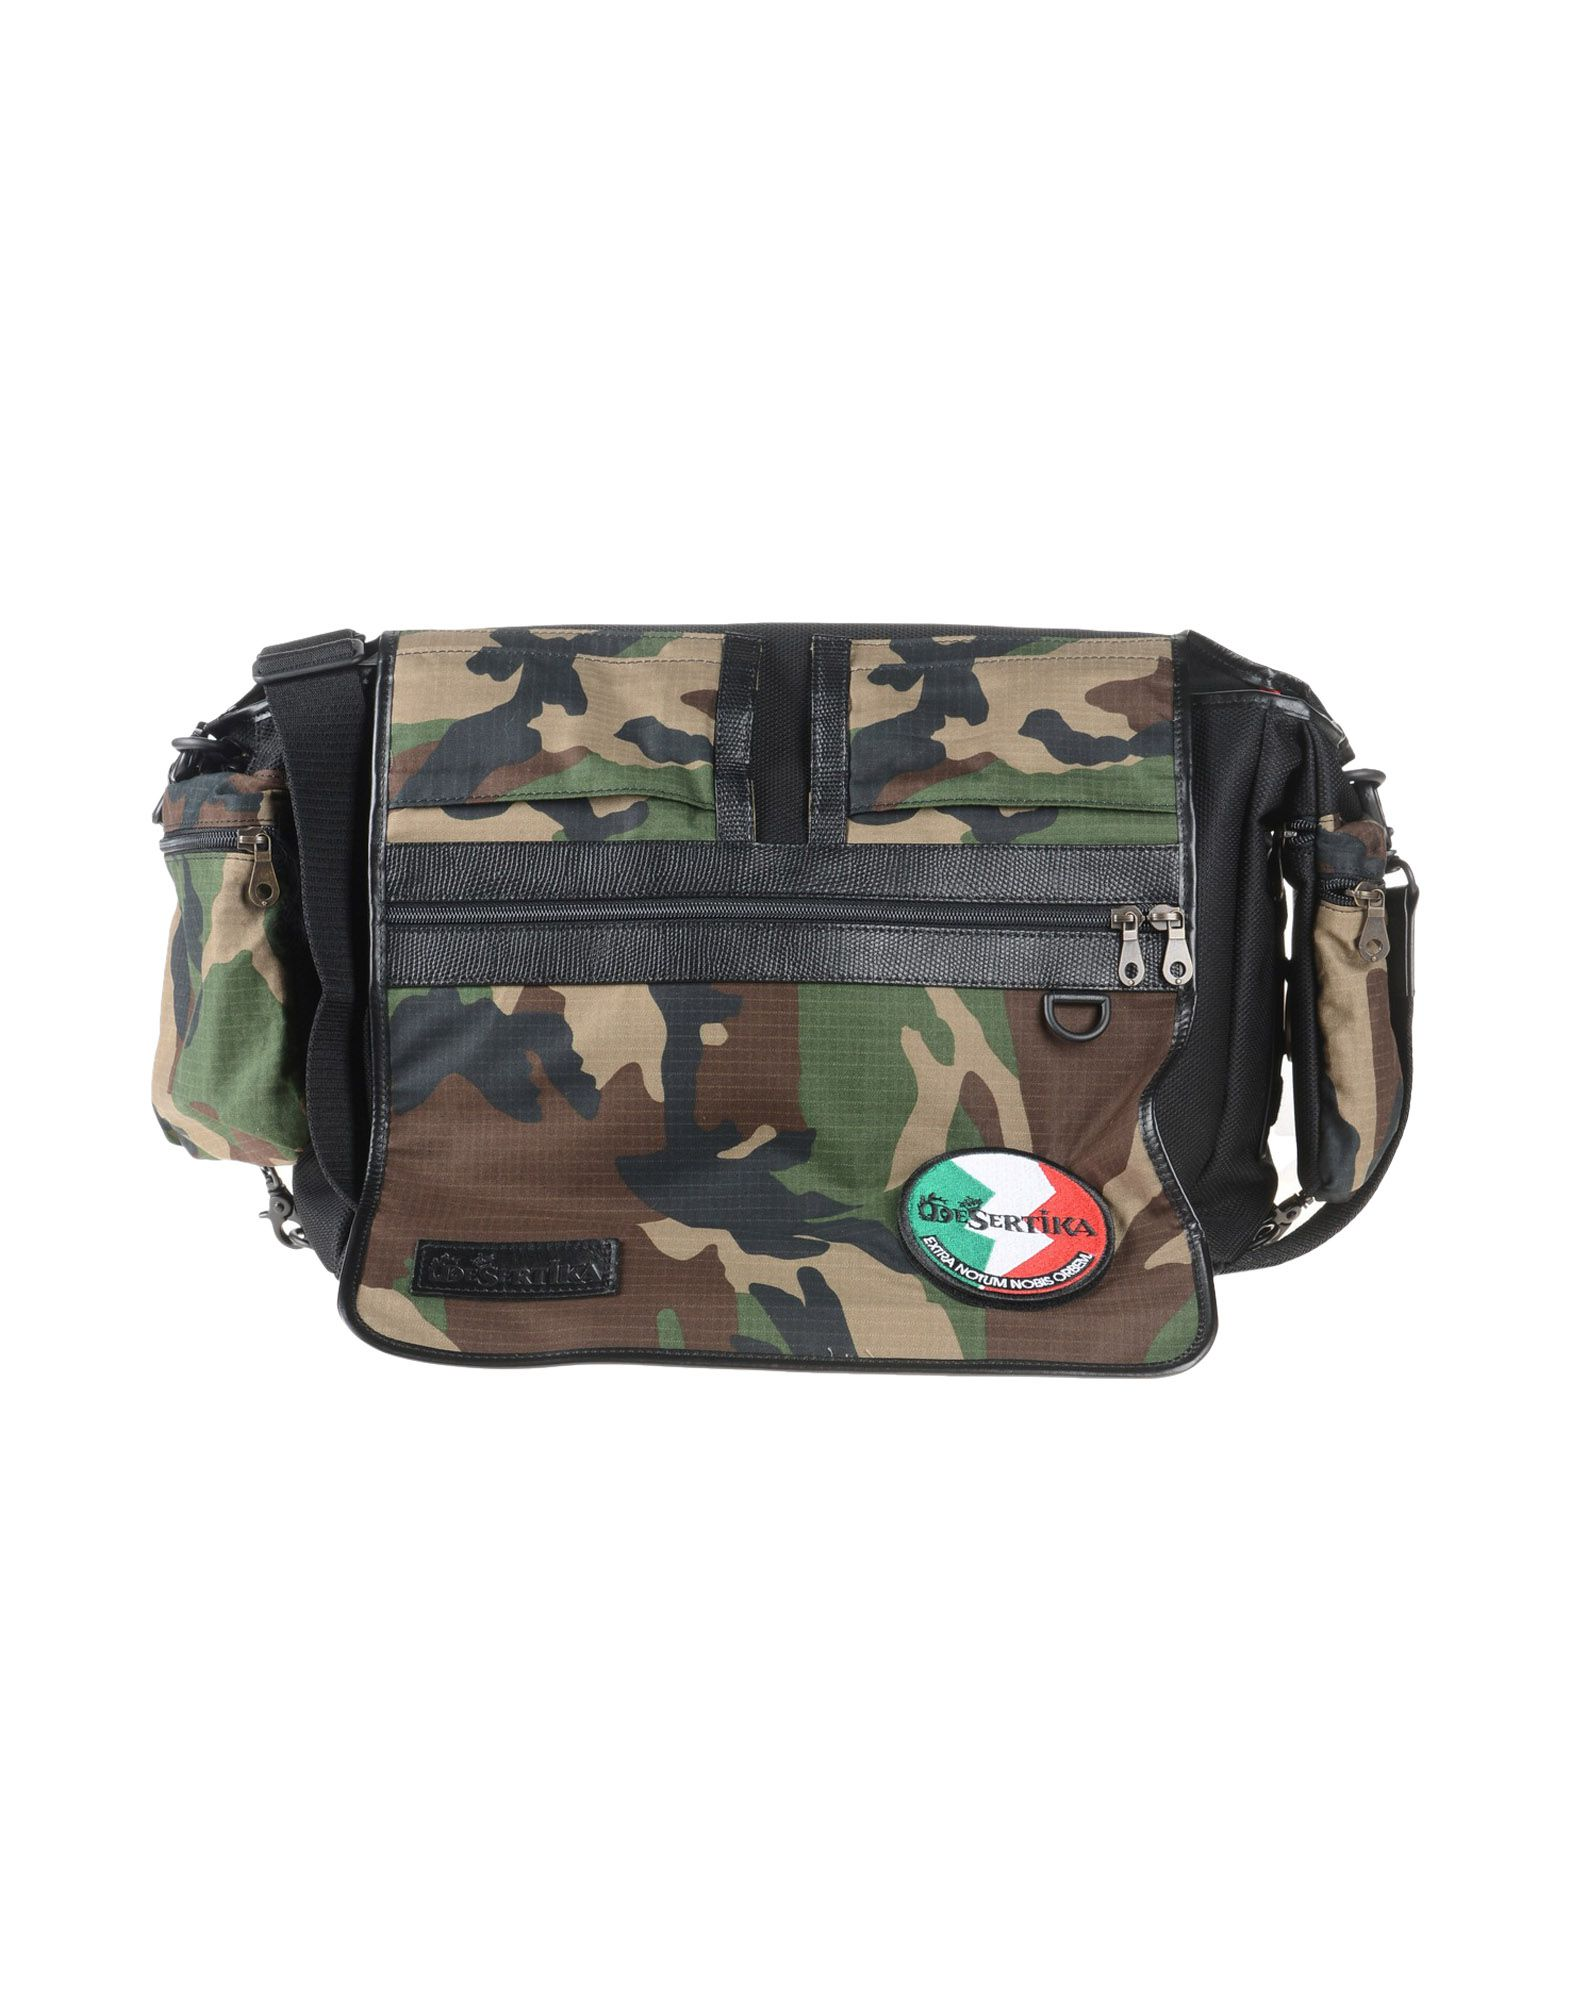 DESERTIKA Work Bag in Military Green